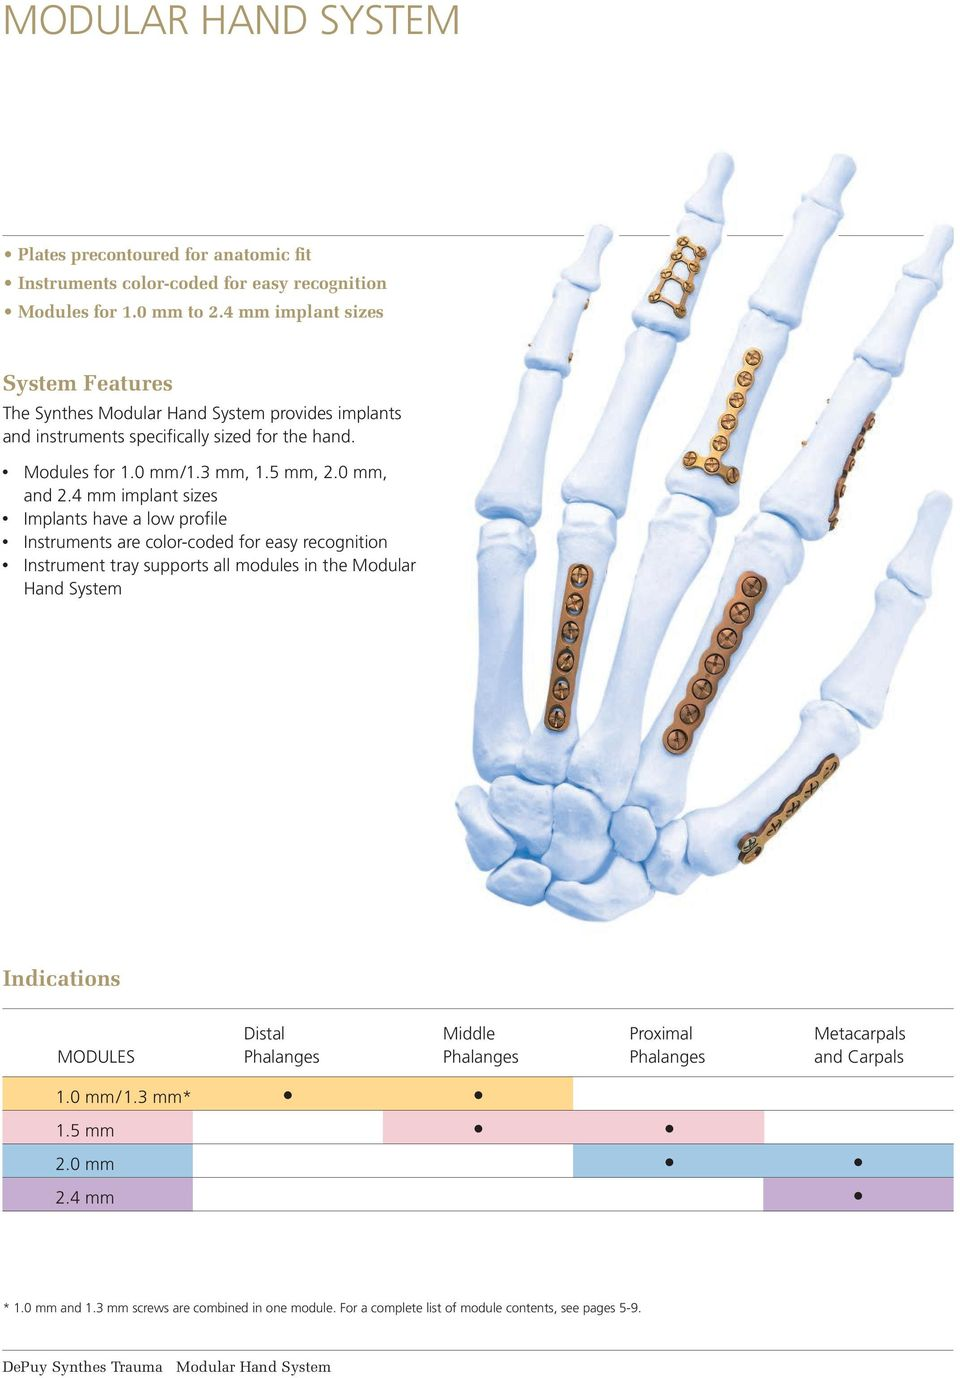 4 mm implant sizes x Implants have a low profile x Instruments are color-coded for easy recognition x Instrument tray supports all modules in the Modular Hand System Indications distal